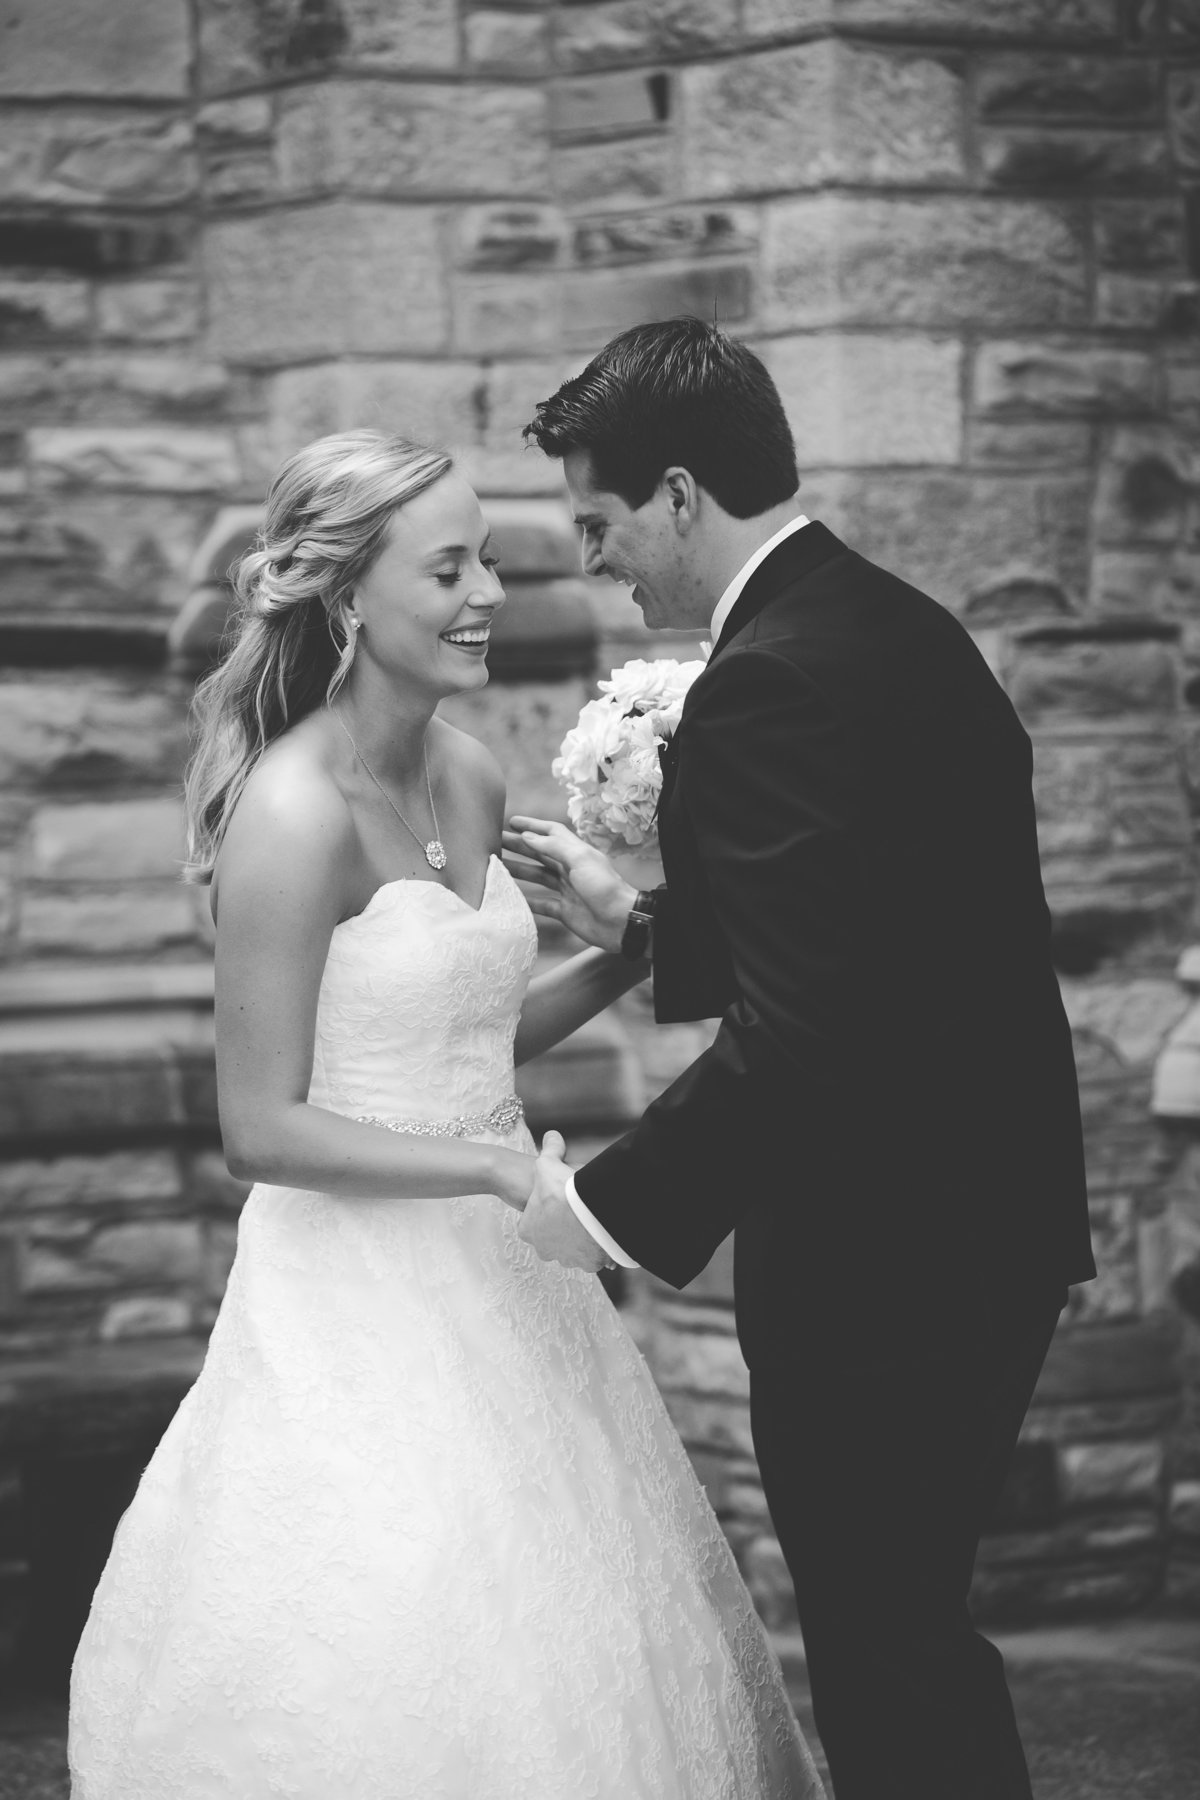 Chapel Wedding - Scaritt Bennett - Nashville Bride - Nashville Brides - Nashville Wedding - Nashvilel Weddings - Southern Bride - Traditional Bride095